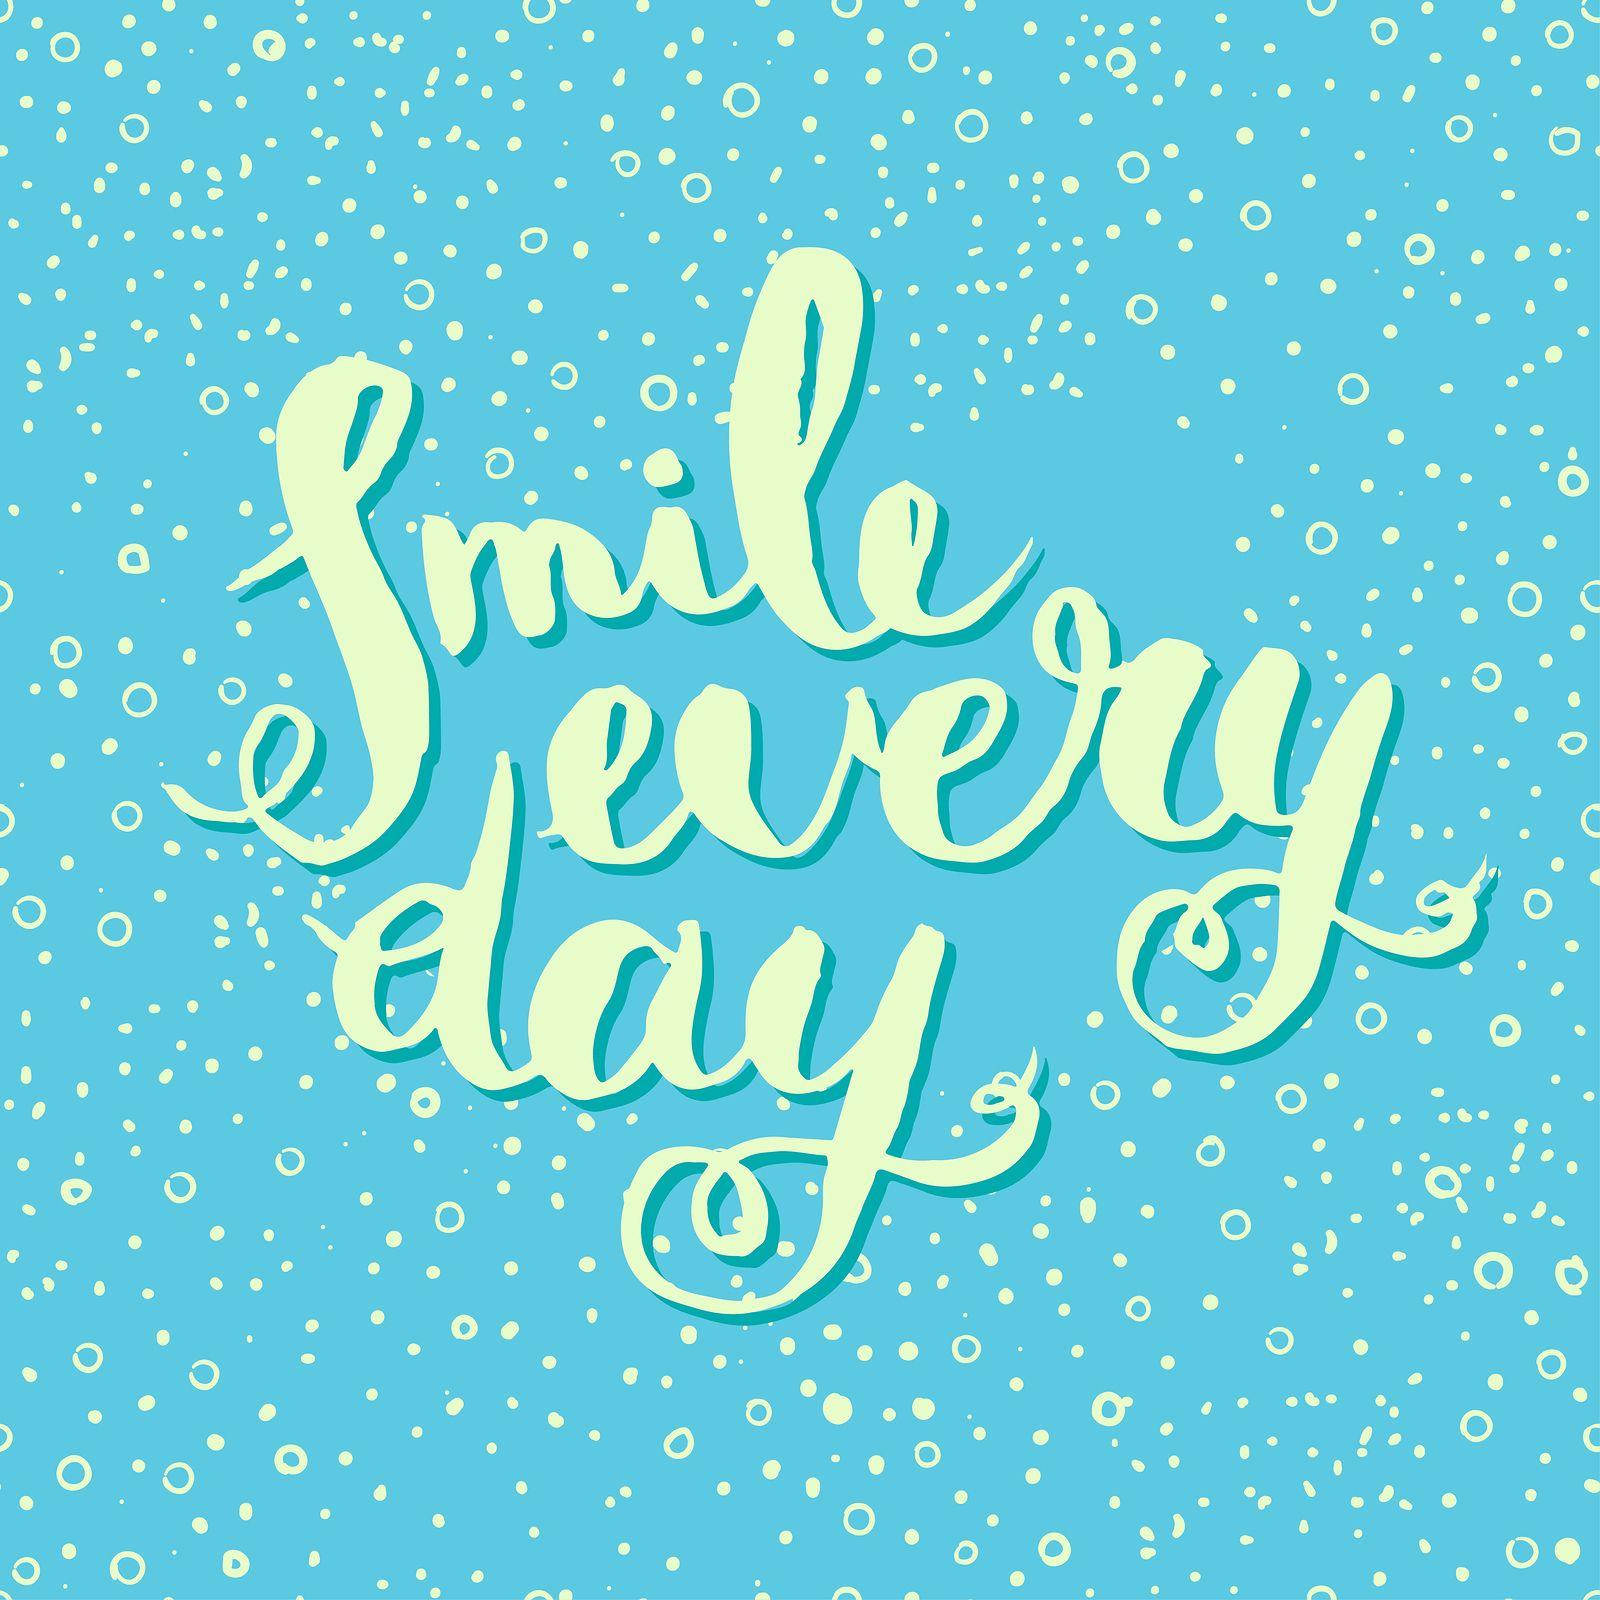 Dental Quotes Smile It's Friday Tgif Fiiday Dentistnyc  Dental Quotes